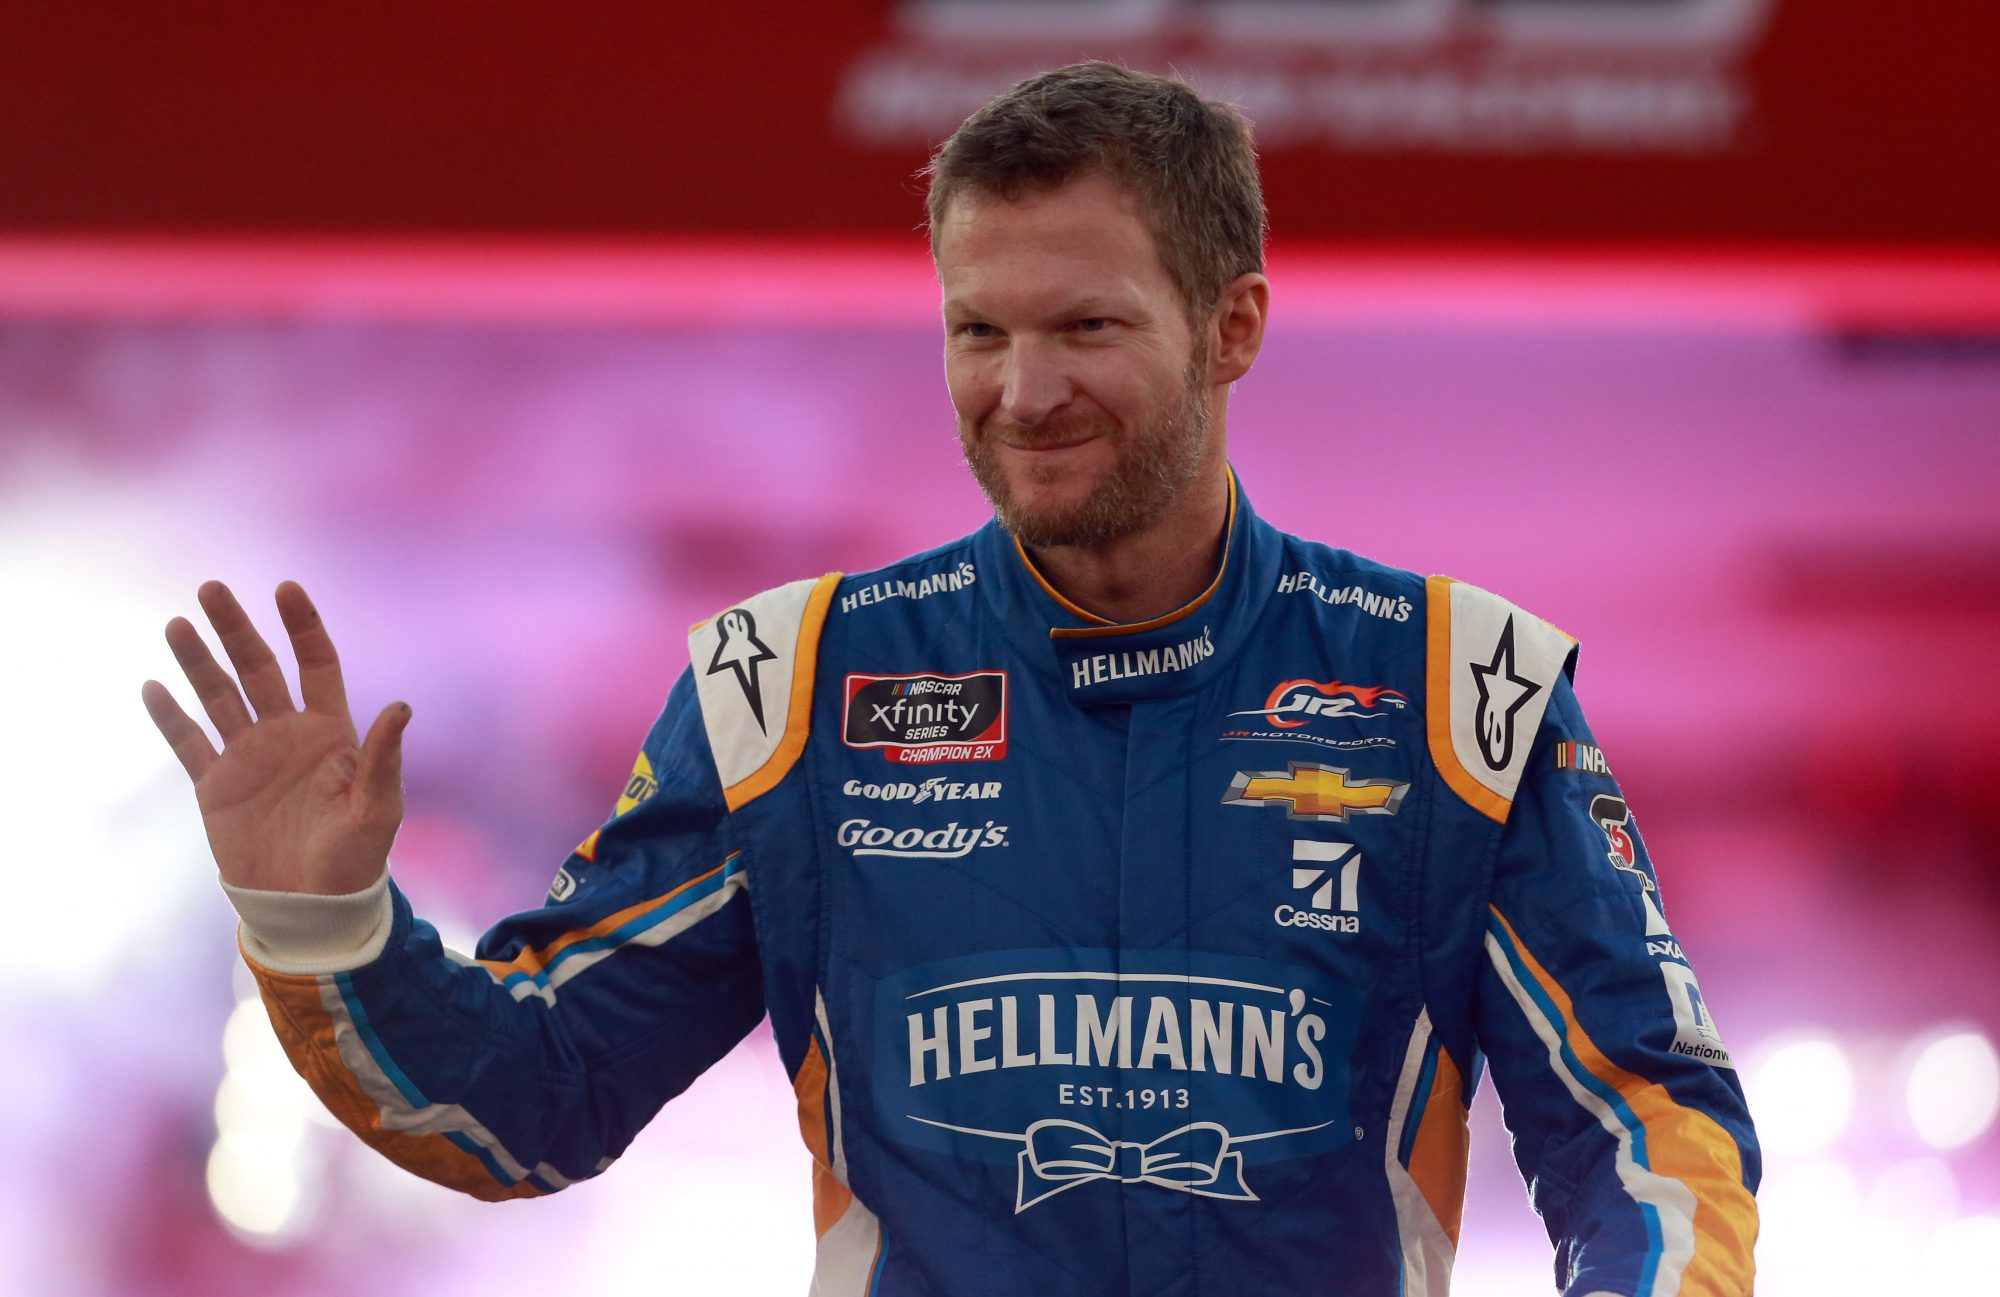 Dale Earnhardt Jr. in Hellmann's Fire Suit